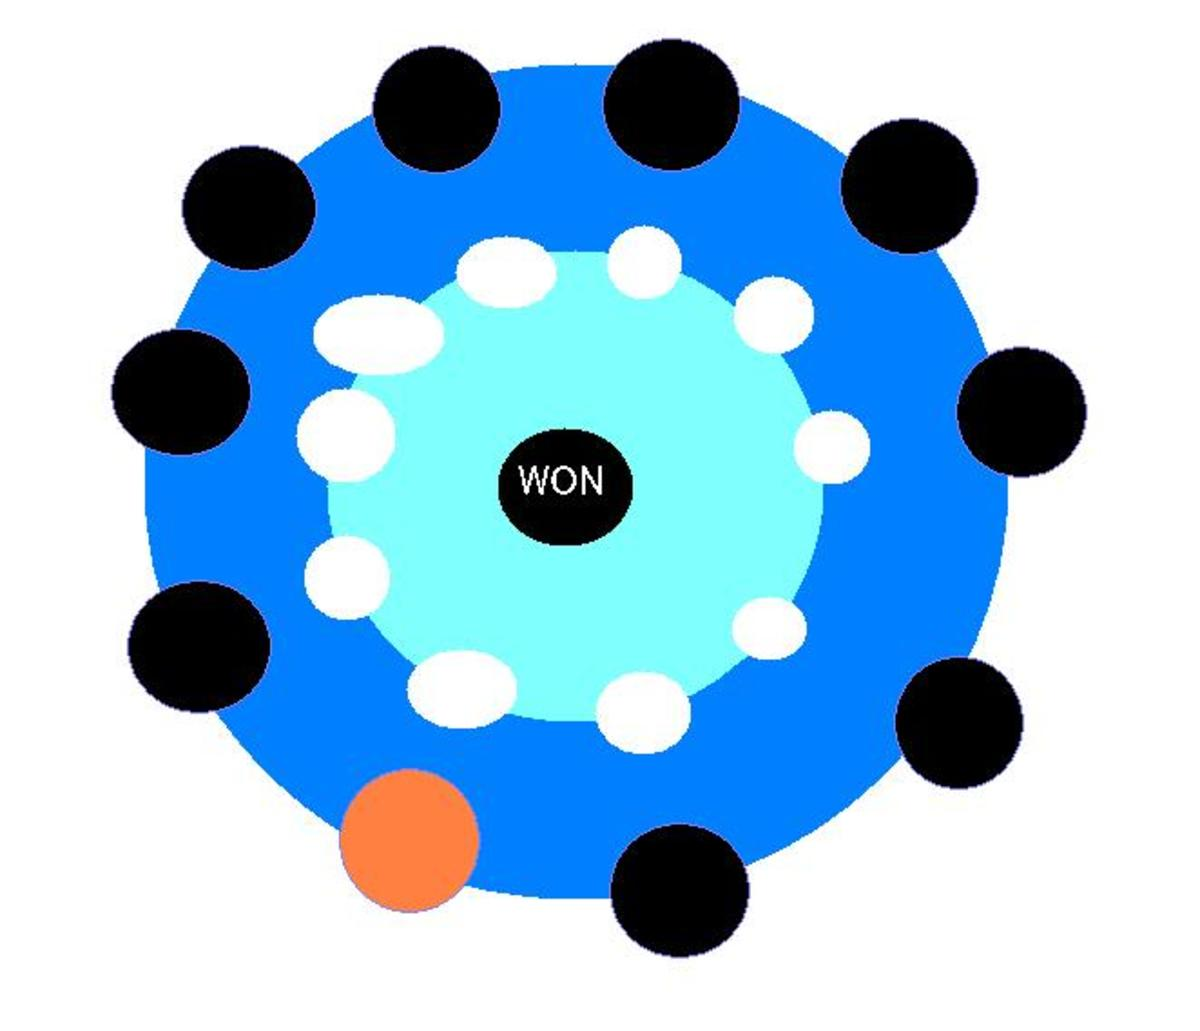 Someone has won.  They get to stand in the center, the center person takes their place and inner/outer circles switch.  Same partners, but reversed inner/outer placement.